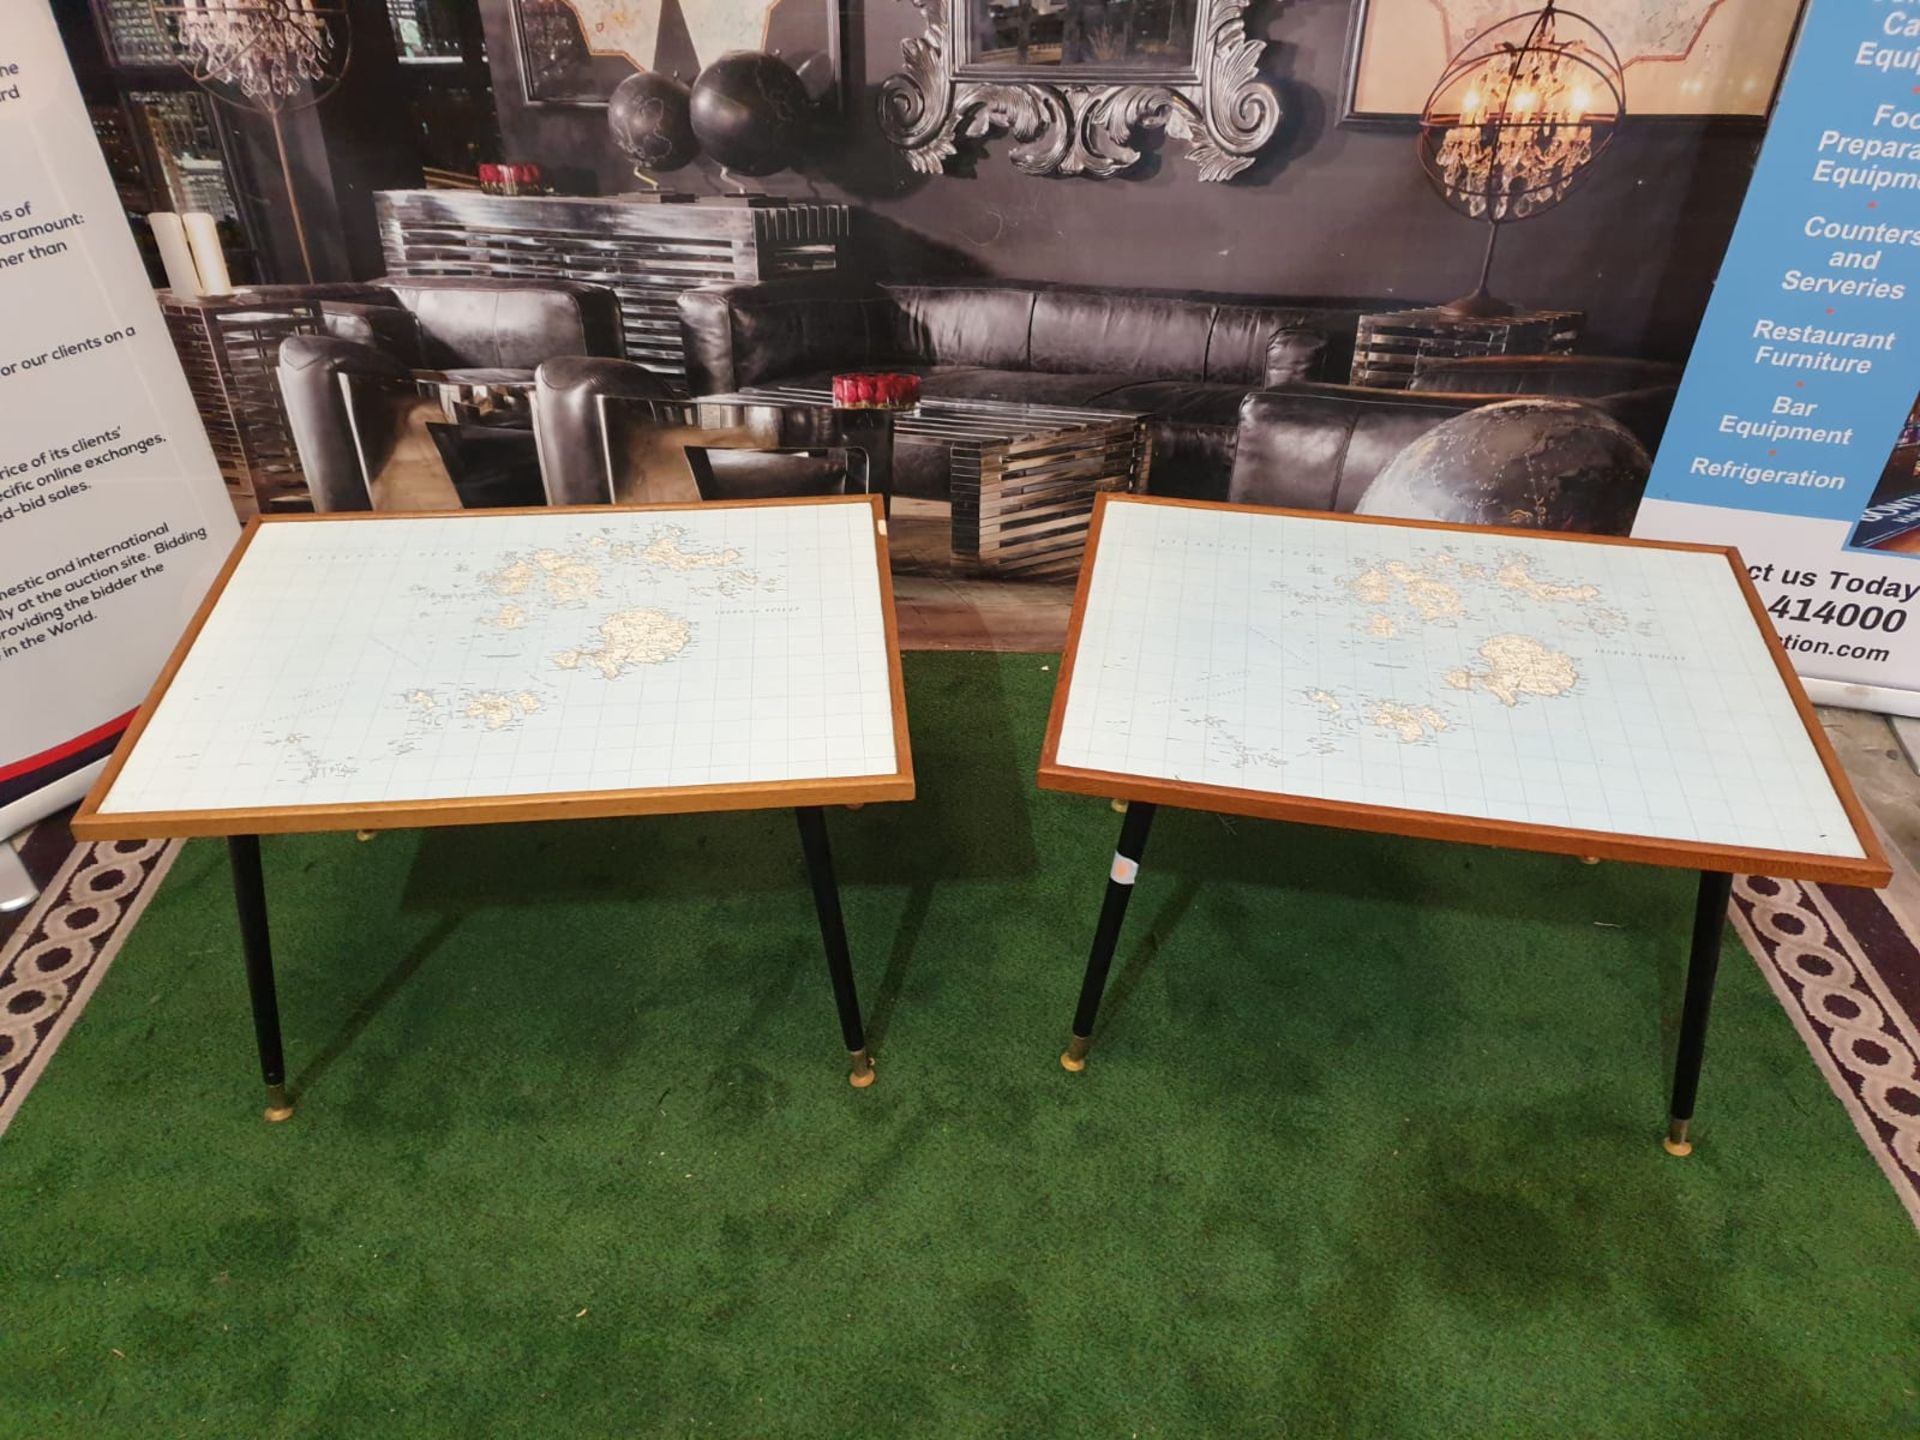 3 x Coffee tables the tops of old school maps of Scilly Isles 82 x 62 x 50cm